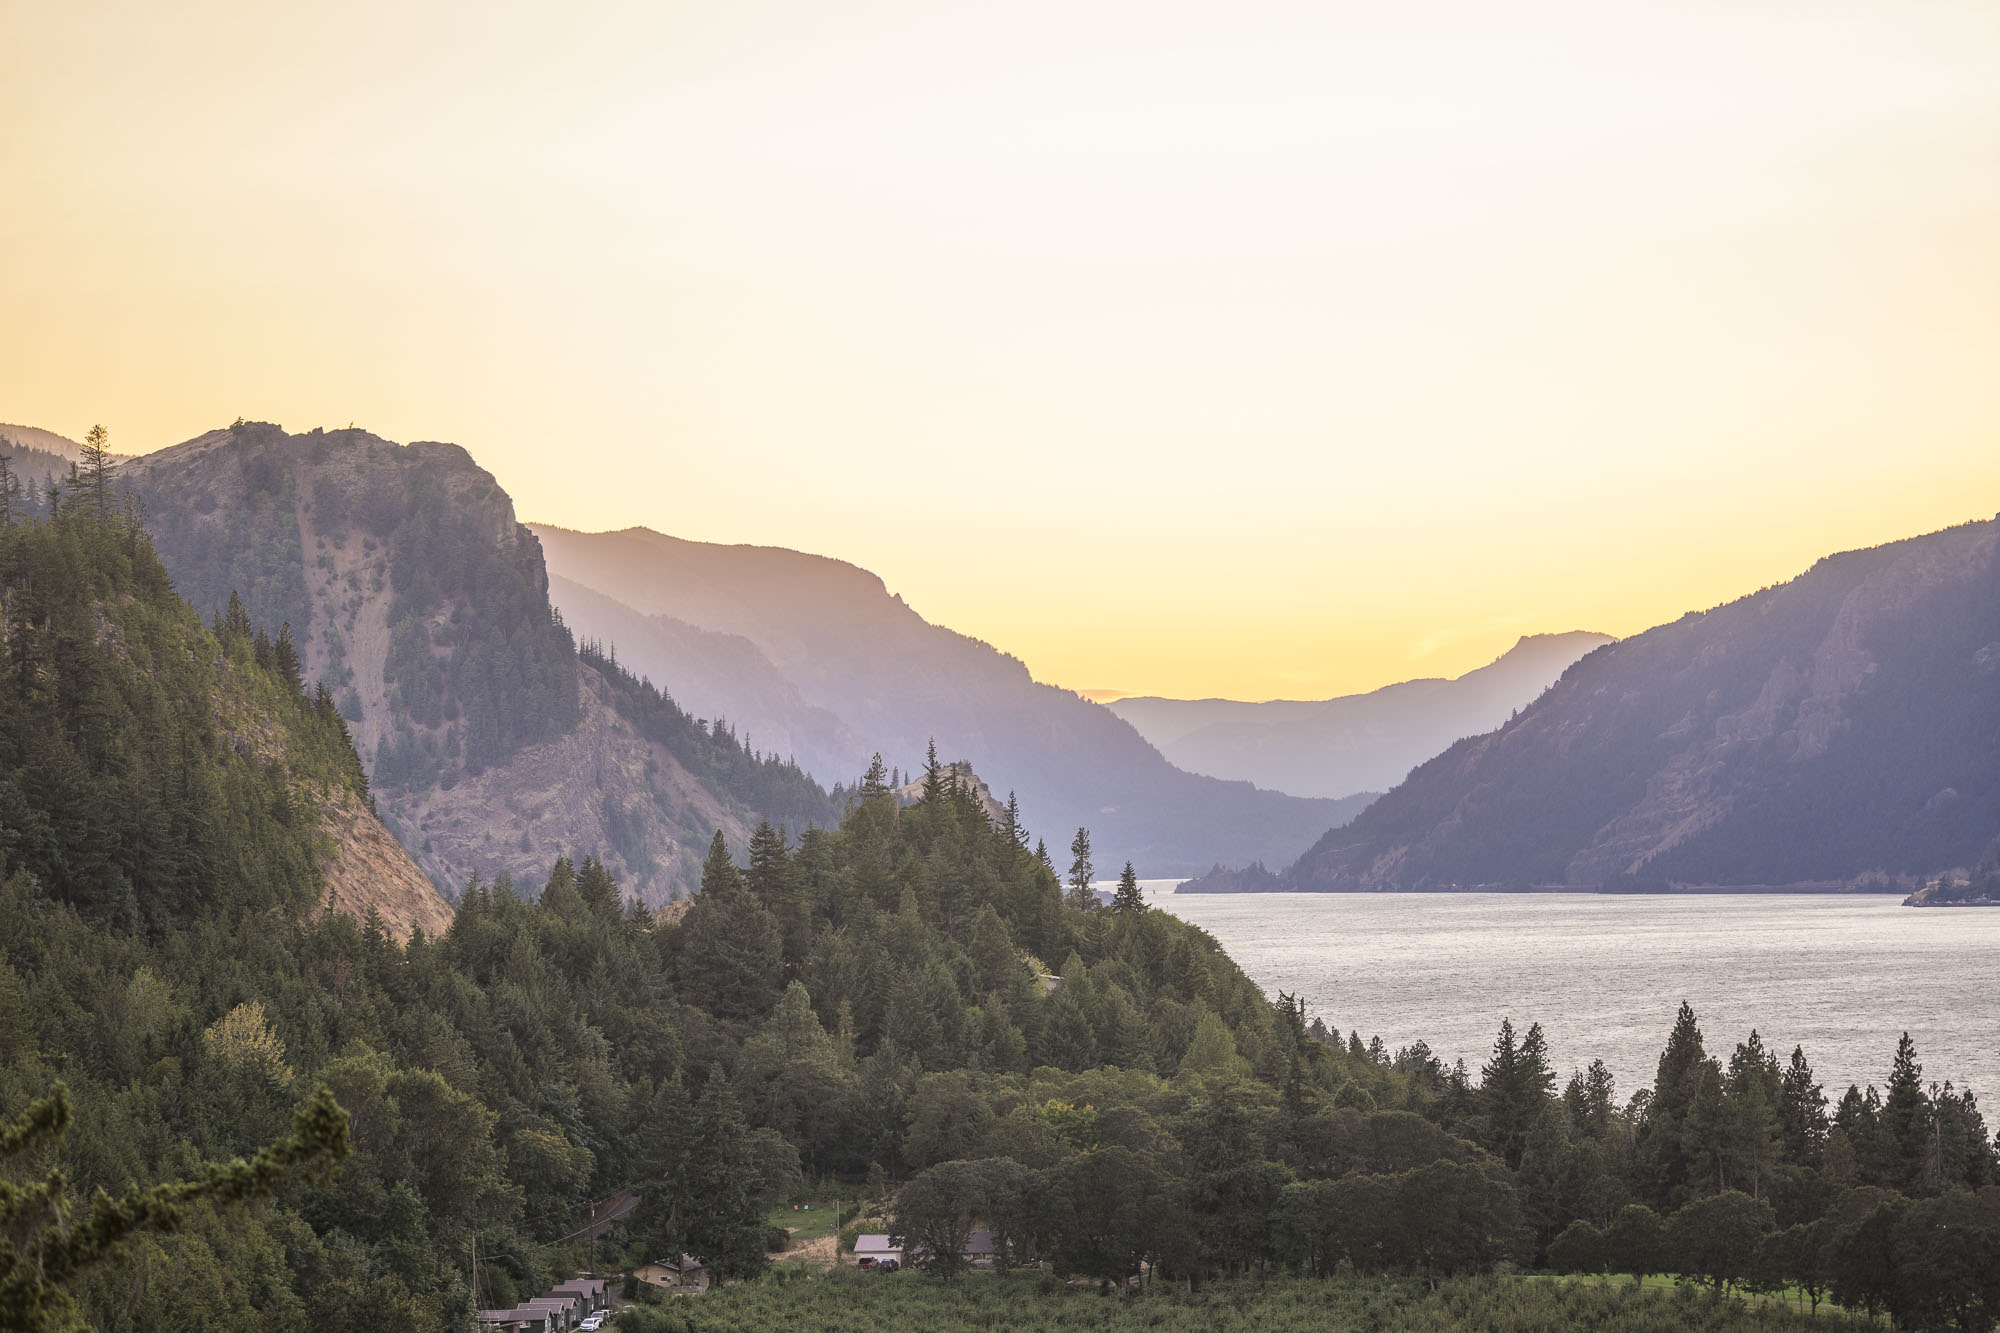 The Columbia River cuts through trees during the golden hour outside of Hood River, OR.